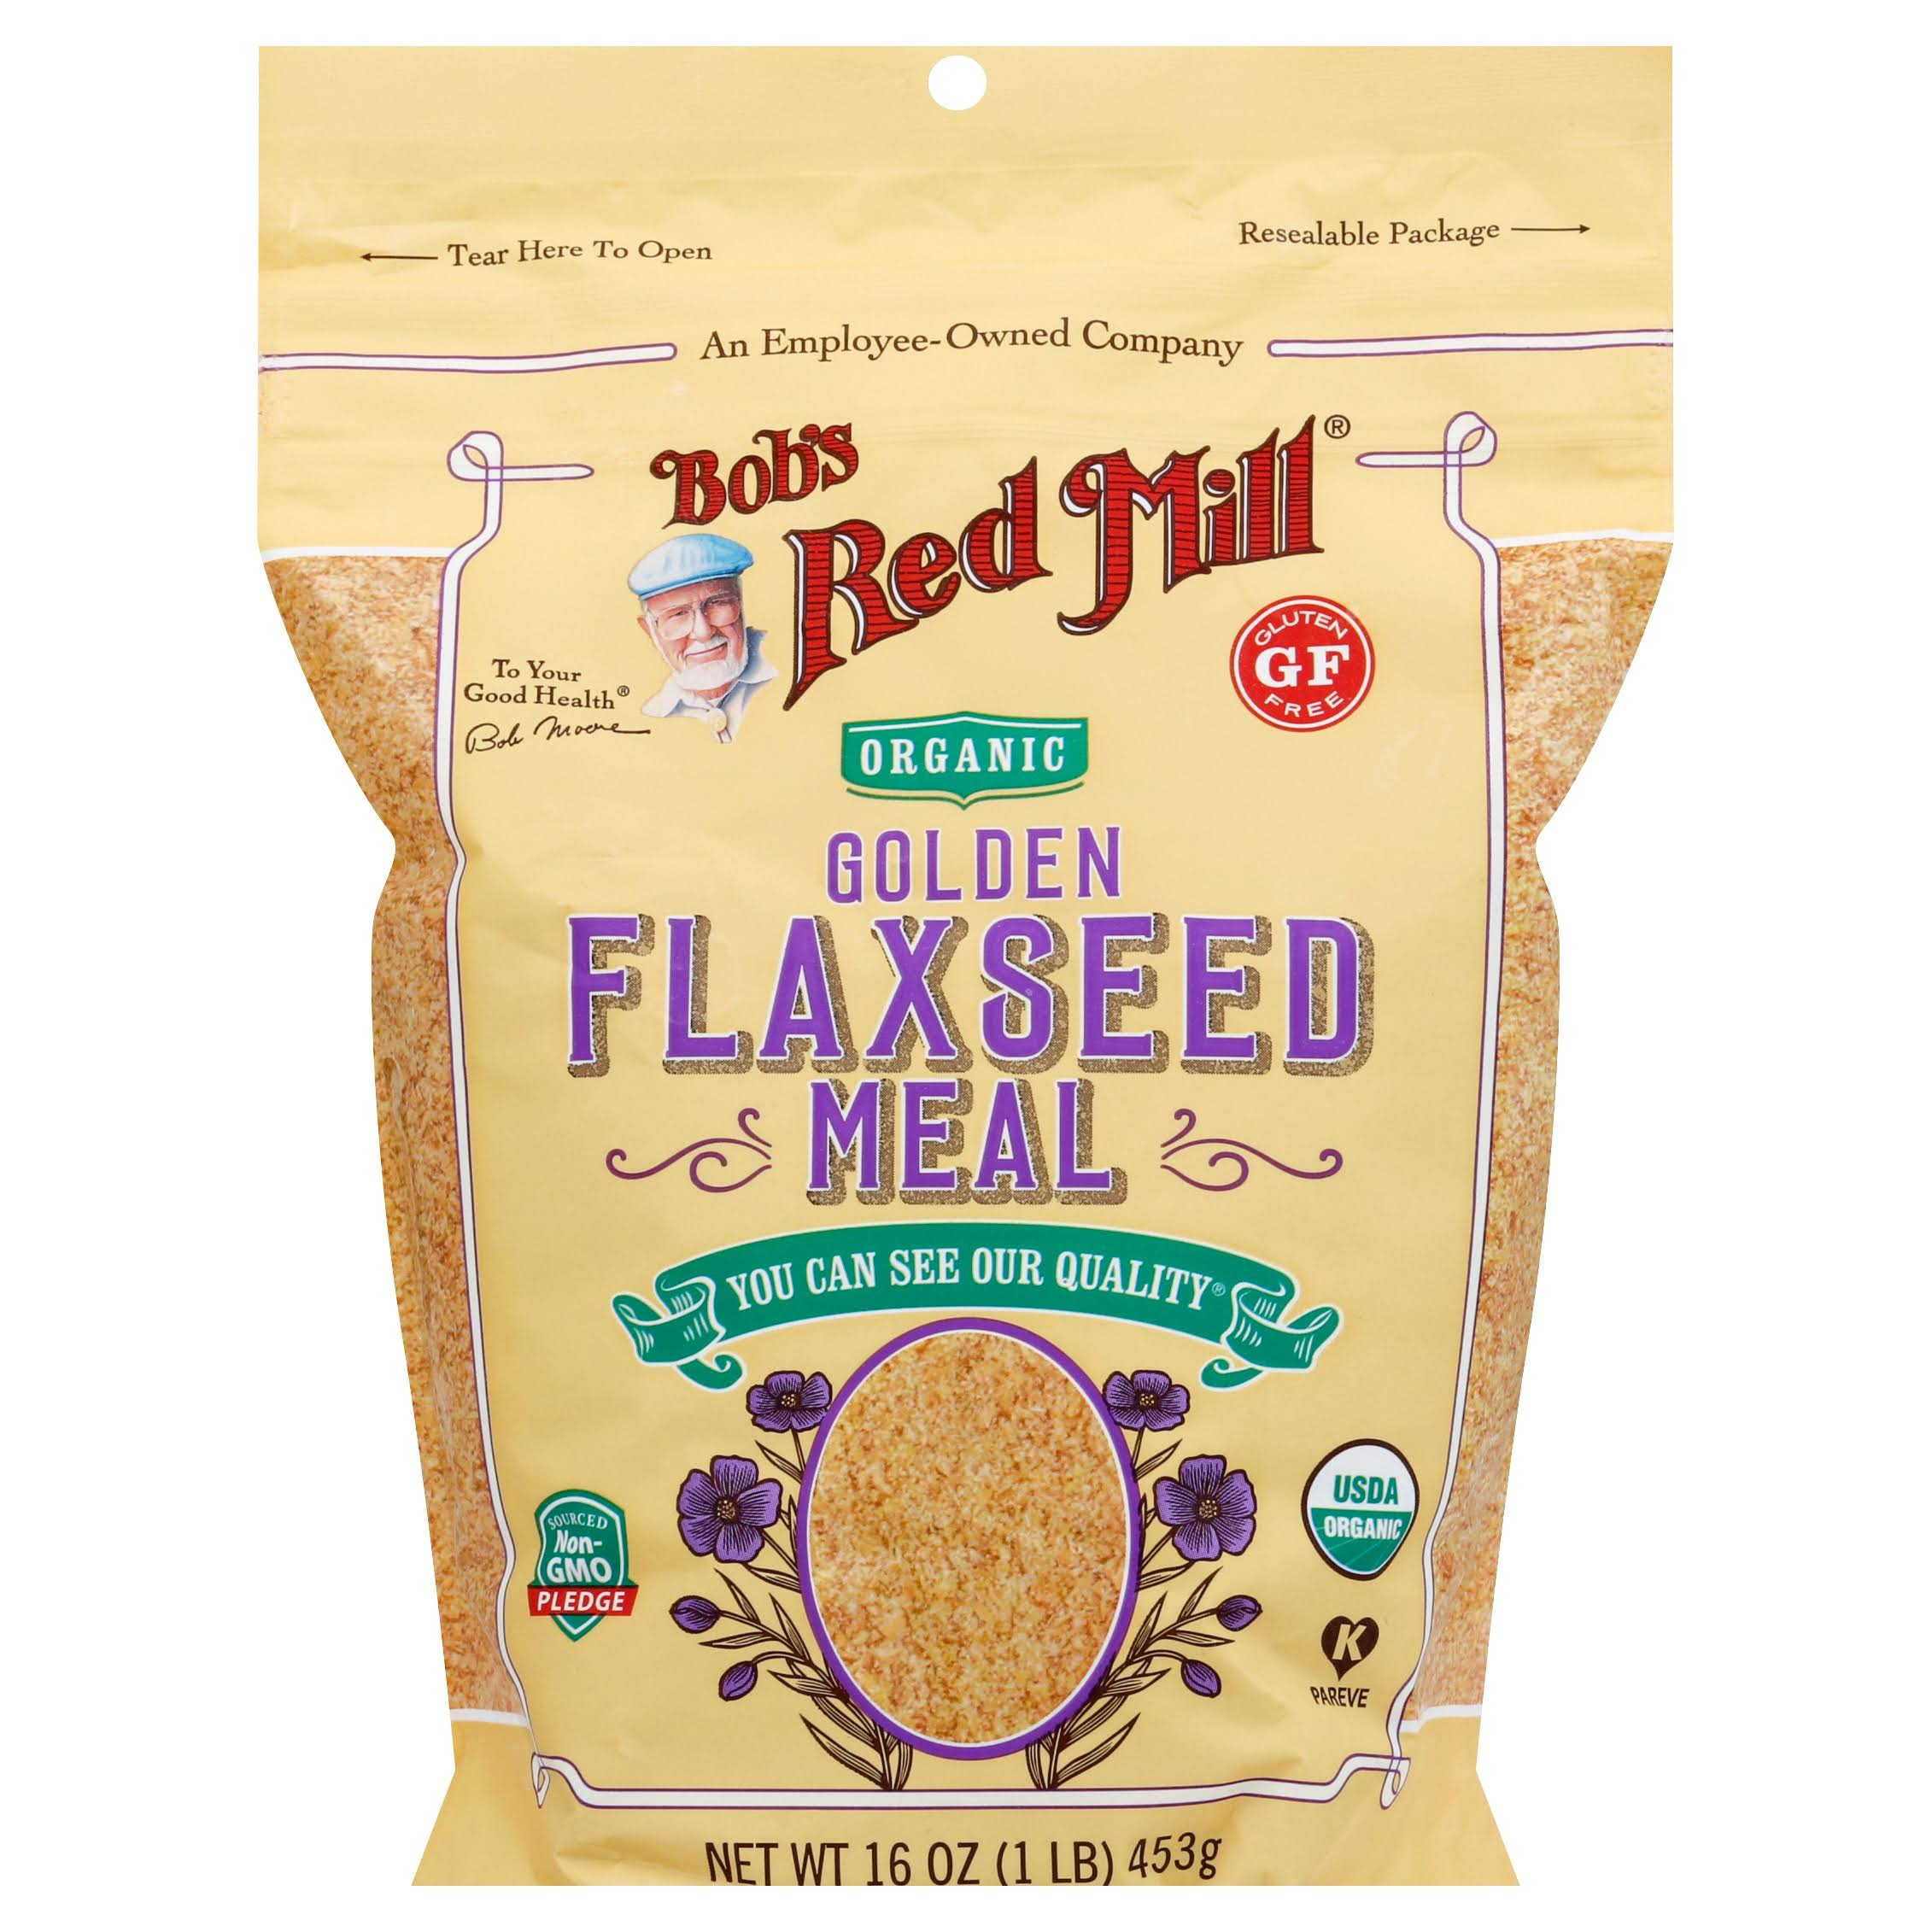 Bobs Red Mill Flaxseed Meal, Organic, Golden - 16 oz